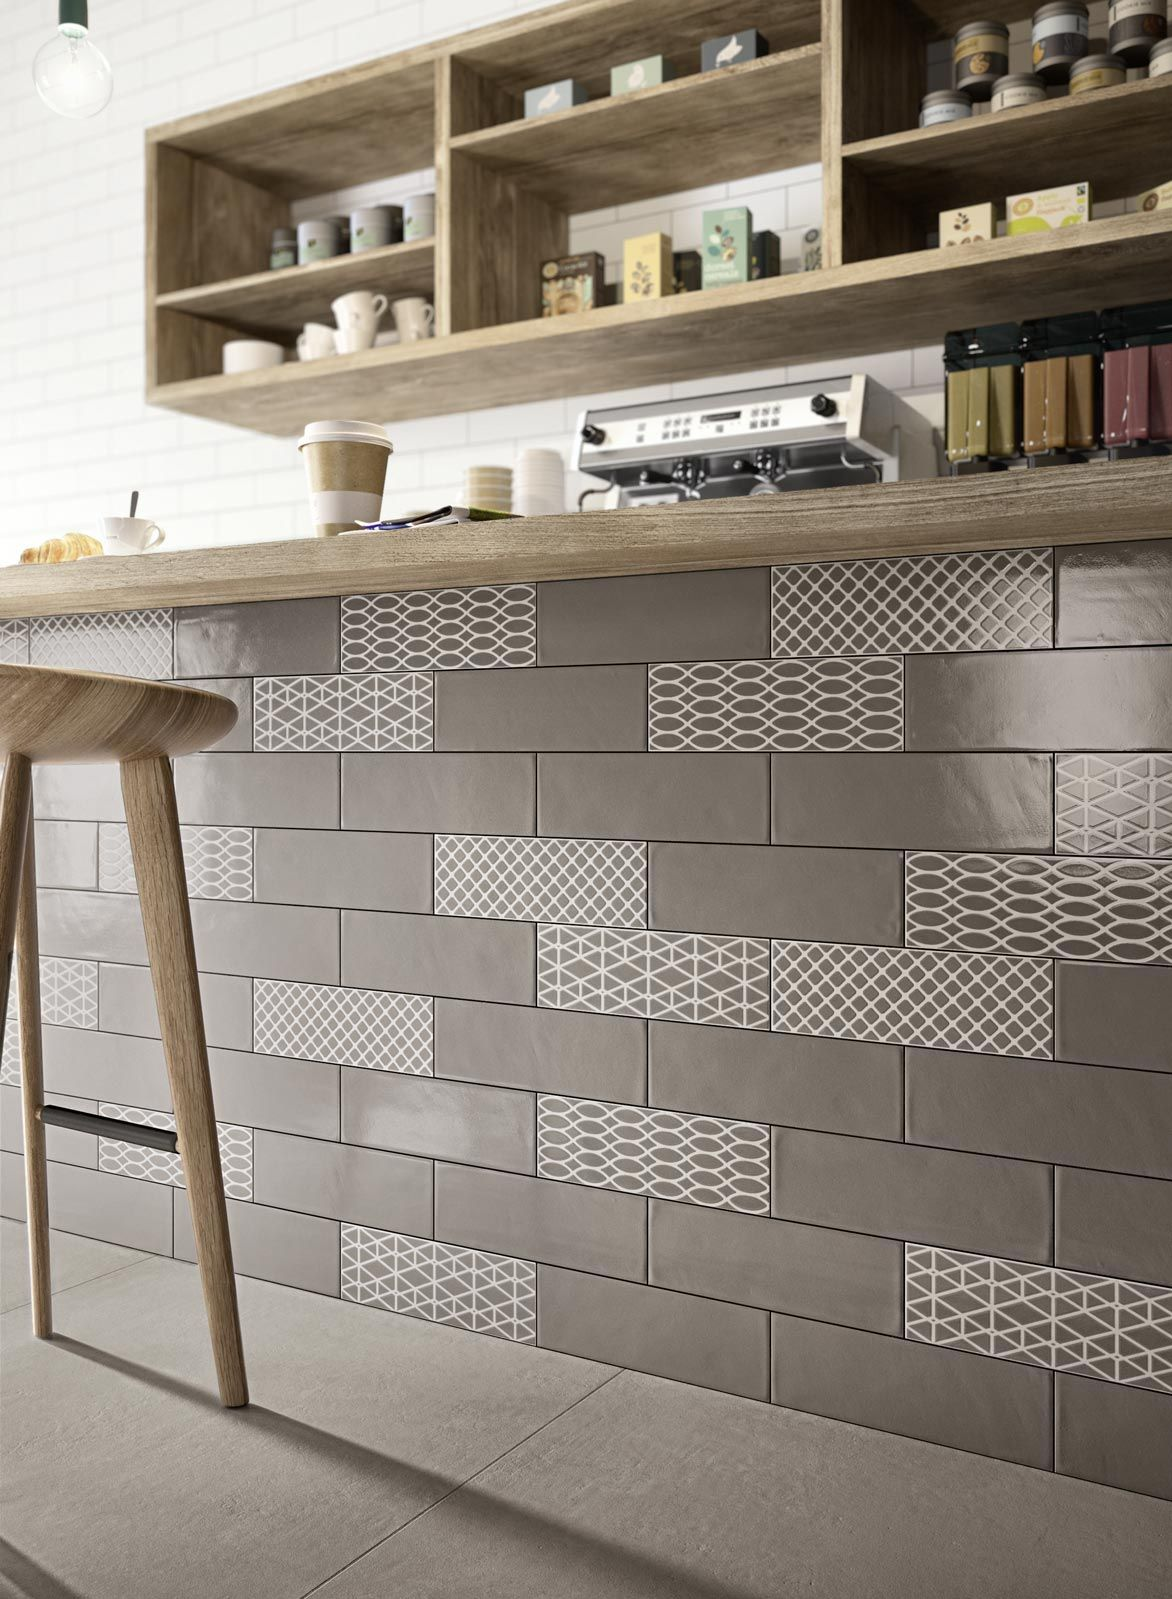 Brick Glossy Wall Coverings Tiles For Kitchen And Bathroom